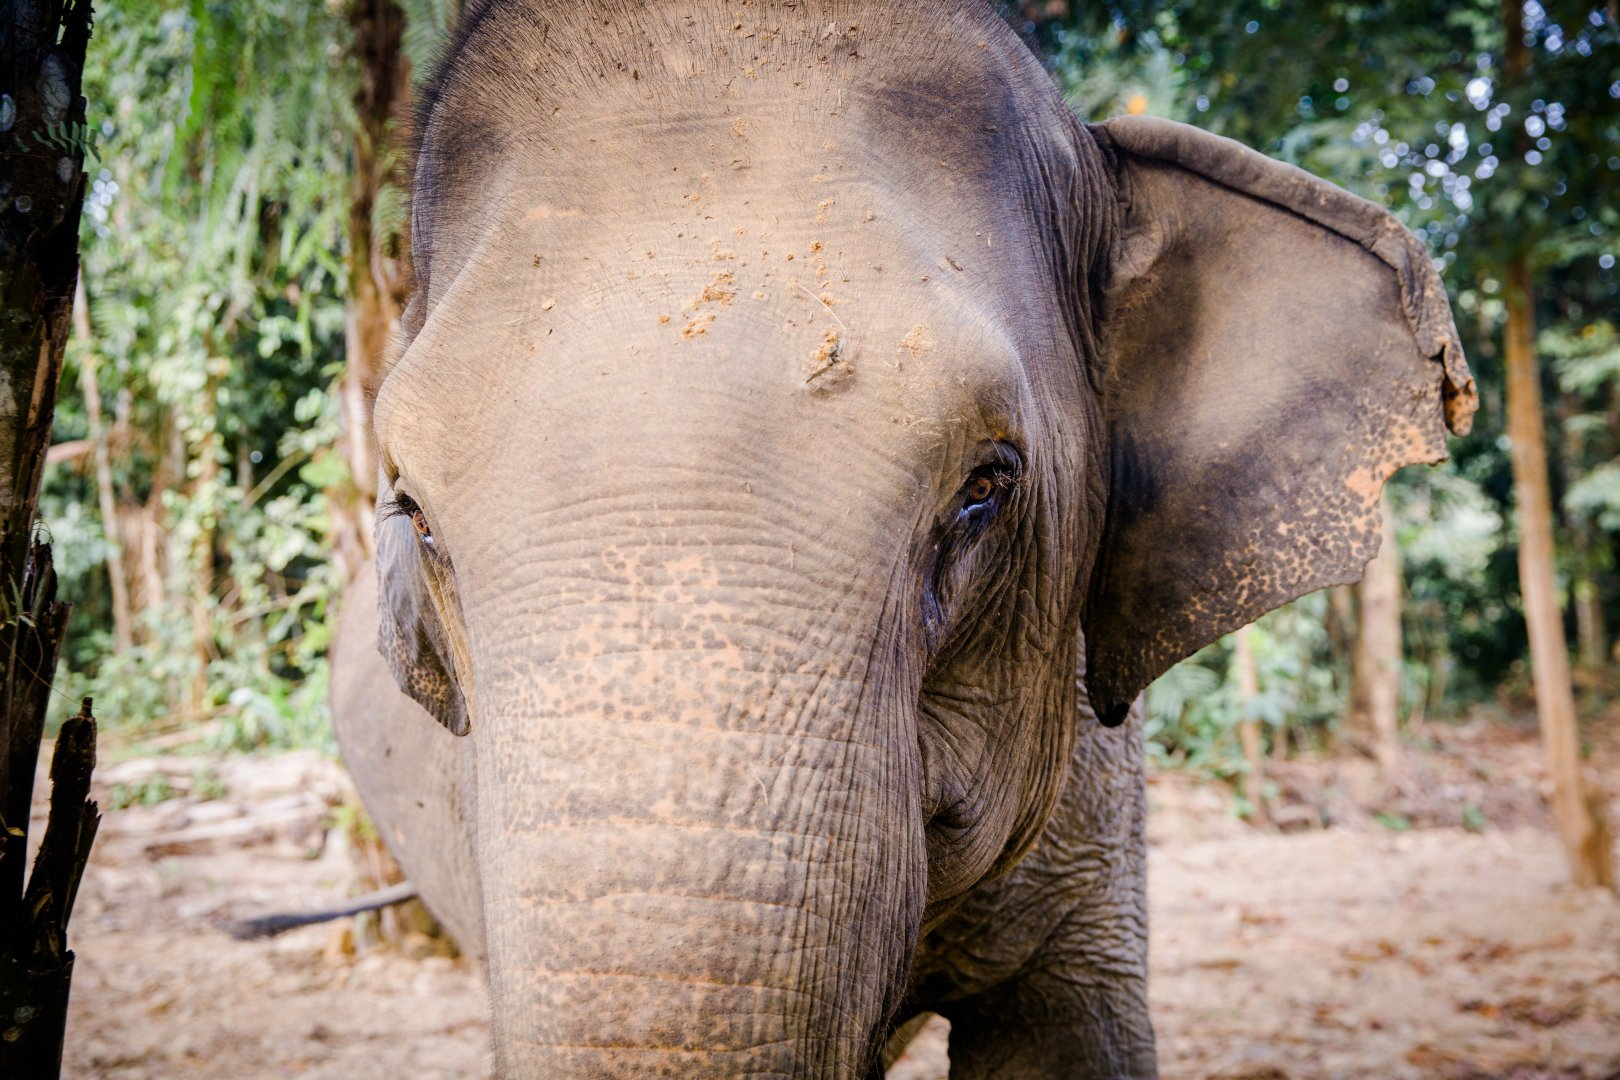 Elephants and Mammoths Terrestrial animal Indian elephant Vertebrate Mammal Wildlife African elephant Skin Snout Nature reserve Wilderness Organism Zoo Adaptation Eye Tusk Tree Working animal Temple Jungle Grass National park Safari Photography Wrinkle Landscape Forest Plant Fawn Tail